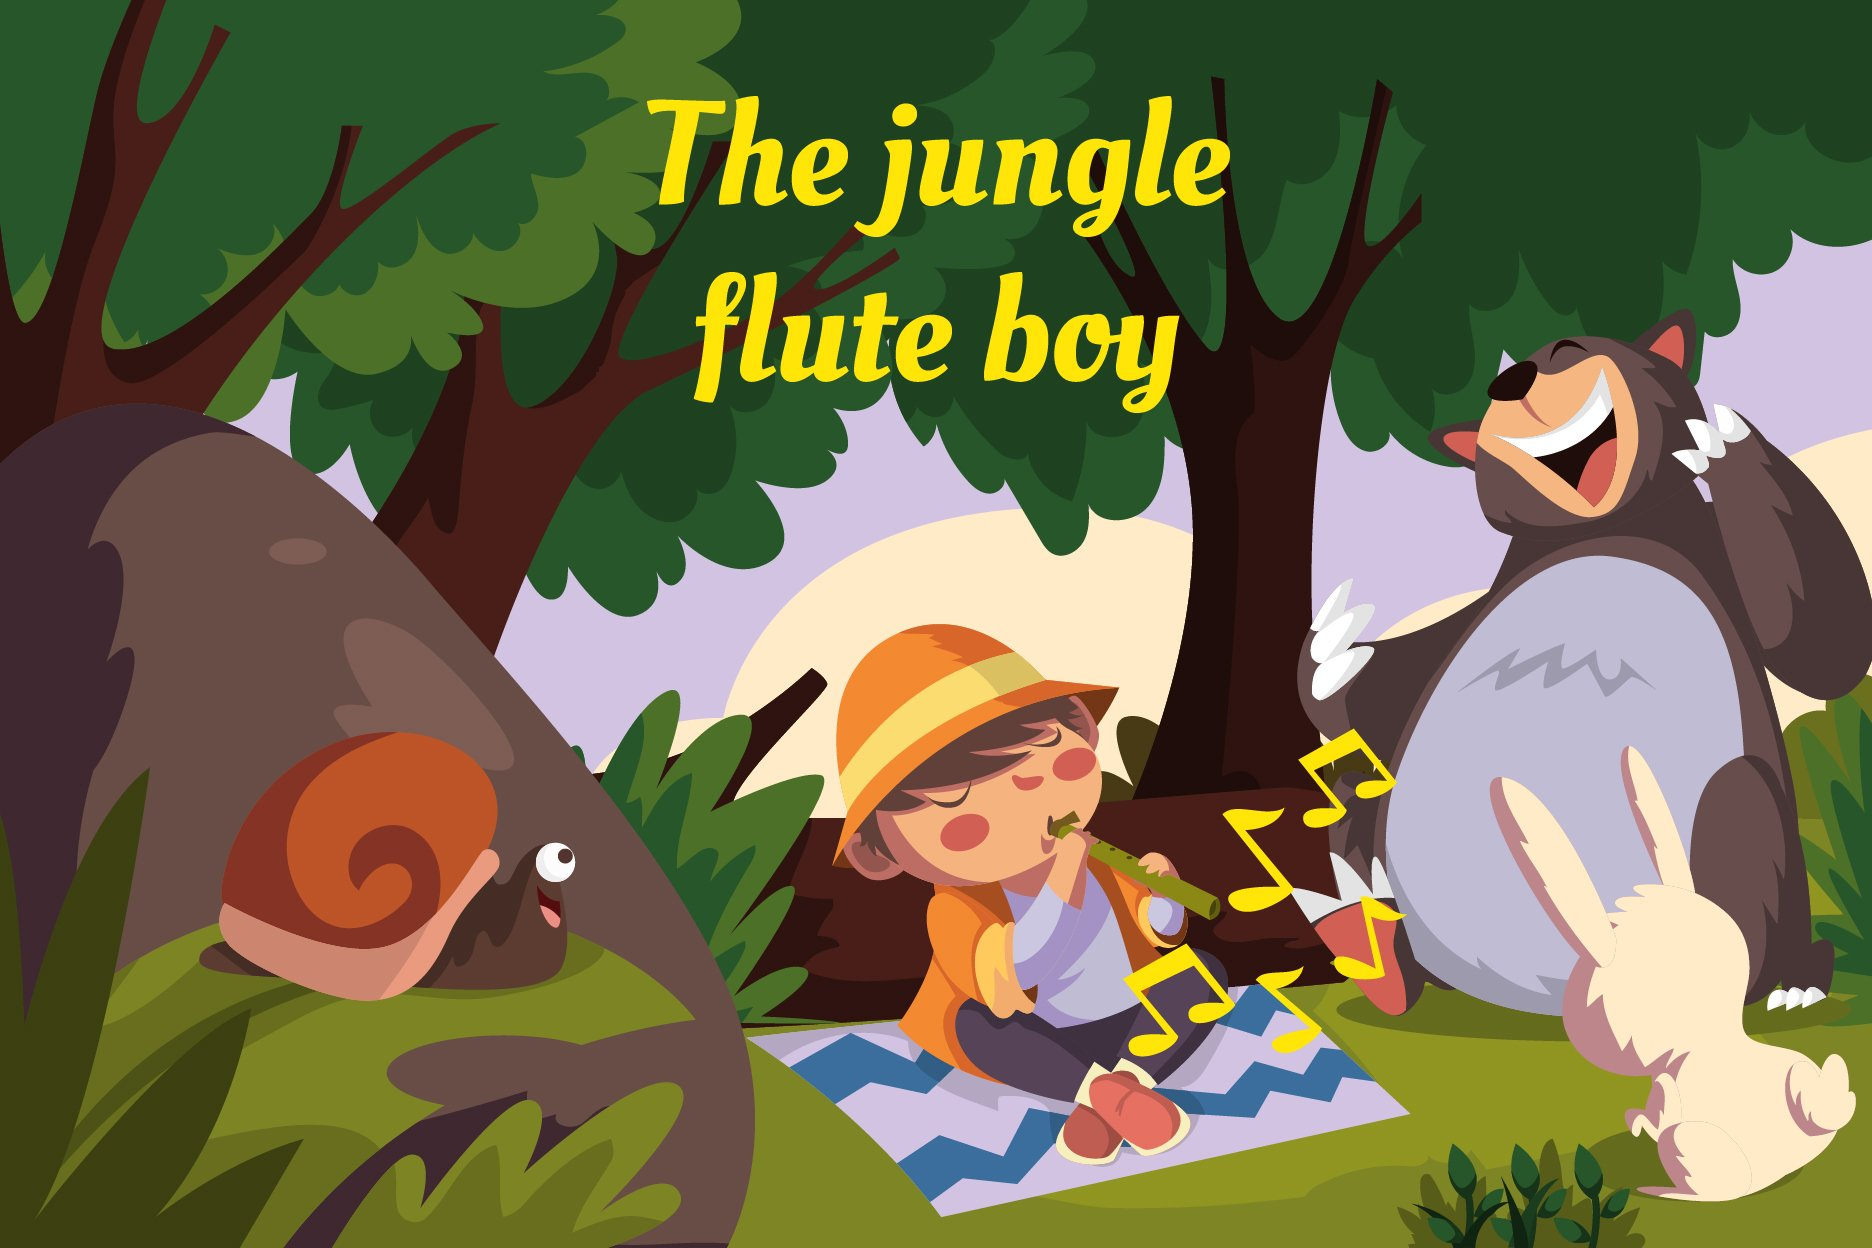 The jungle flute boy-vector illustration example image 1